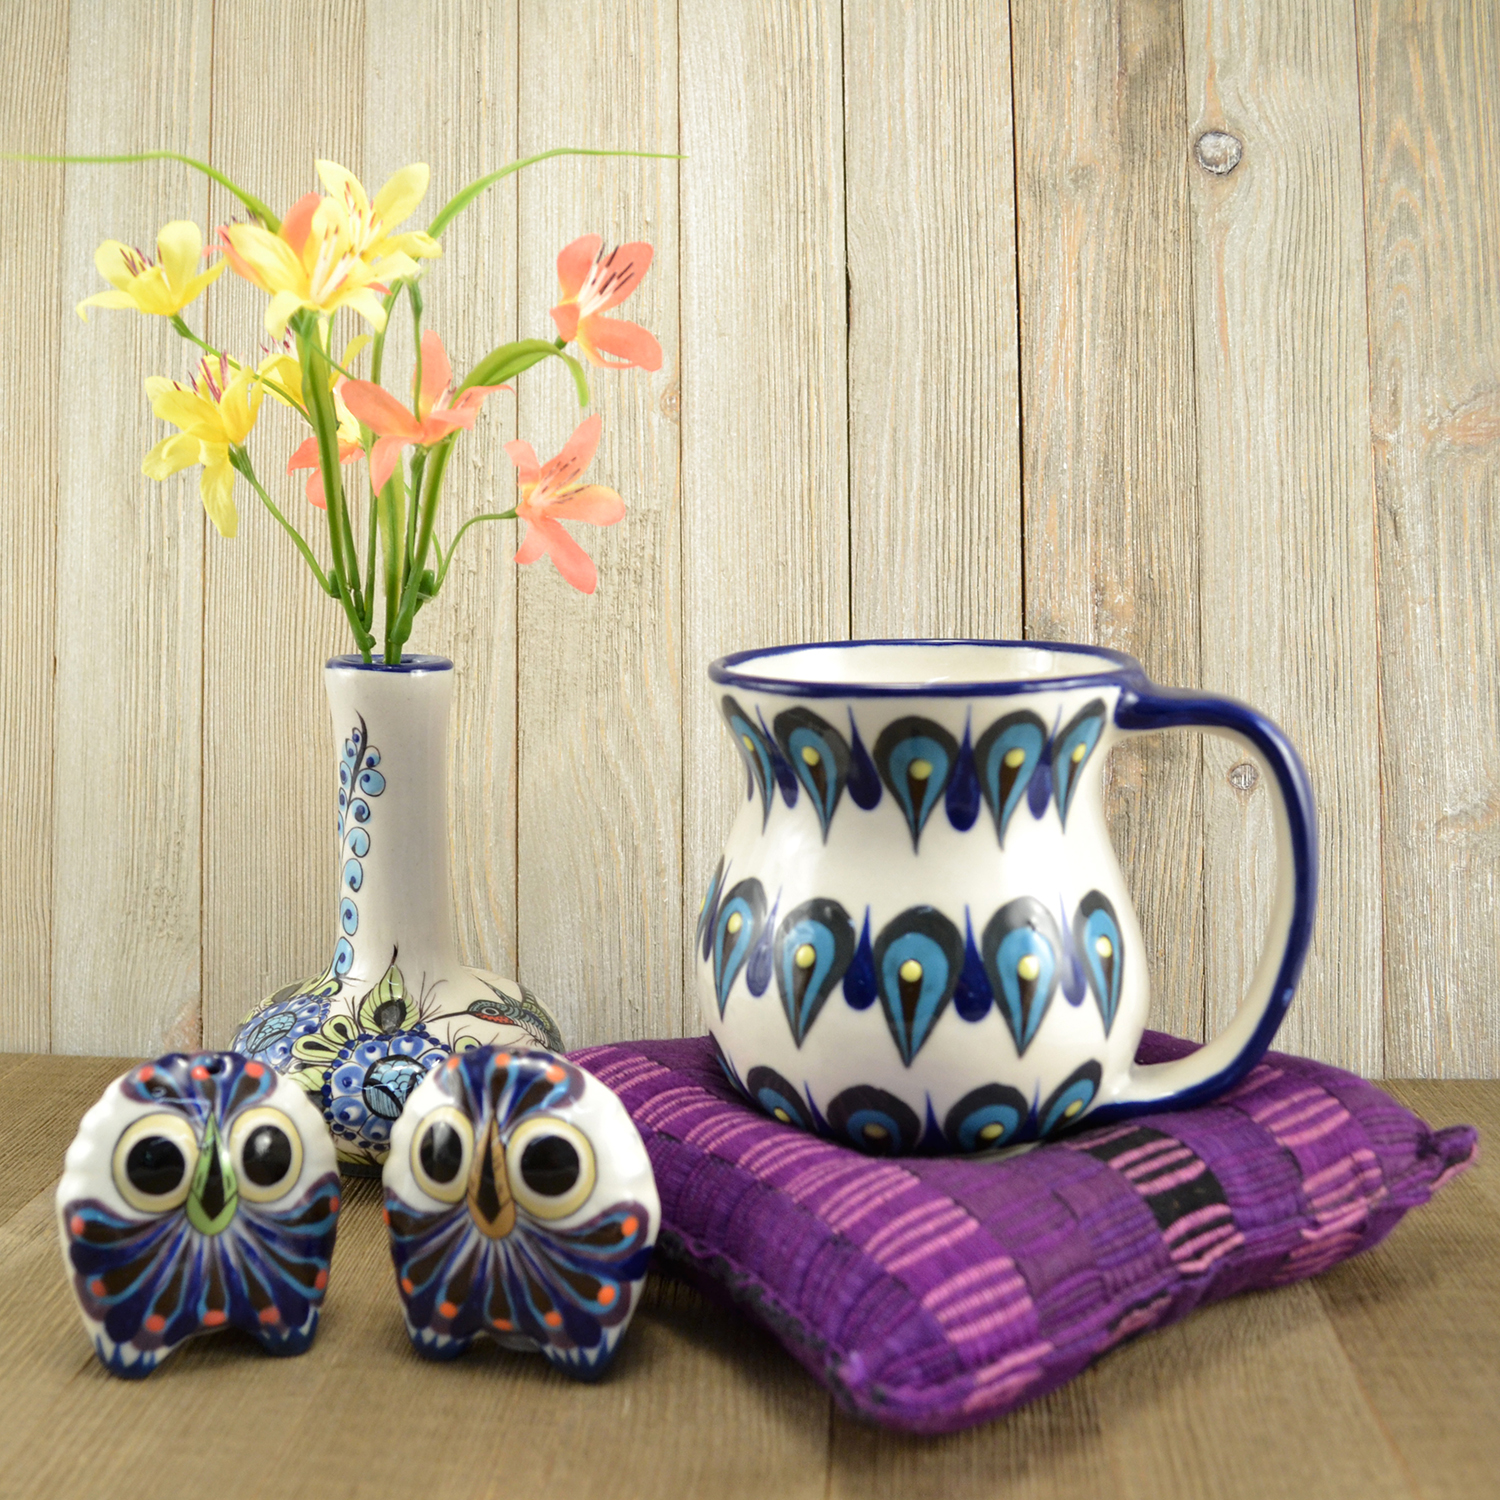 Wild Bird Bud Vase with Owl Salt and Pepper Shakers, Coffee Mug, and Cup Warmer